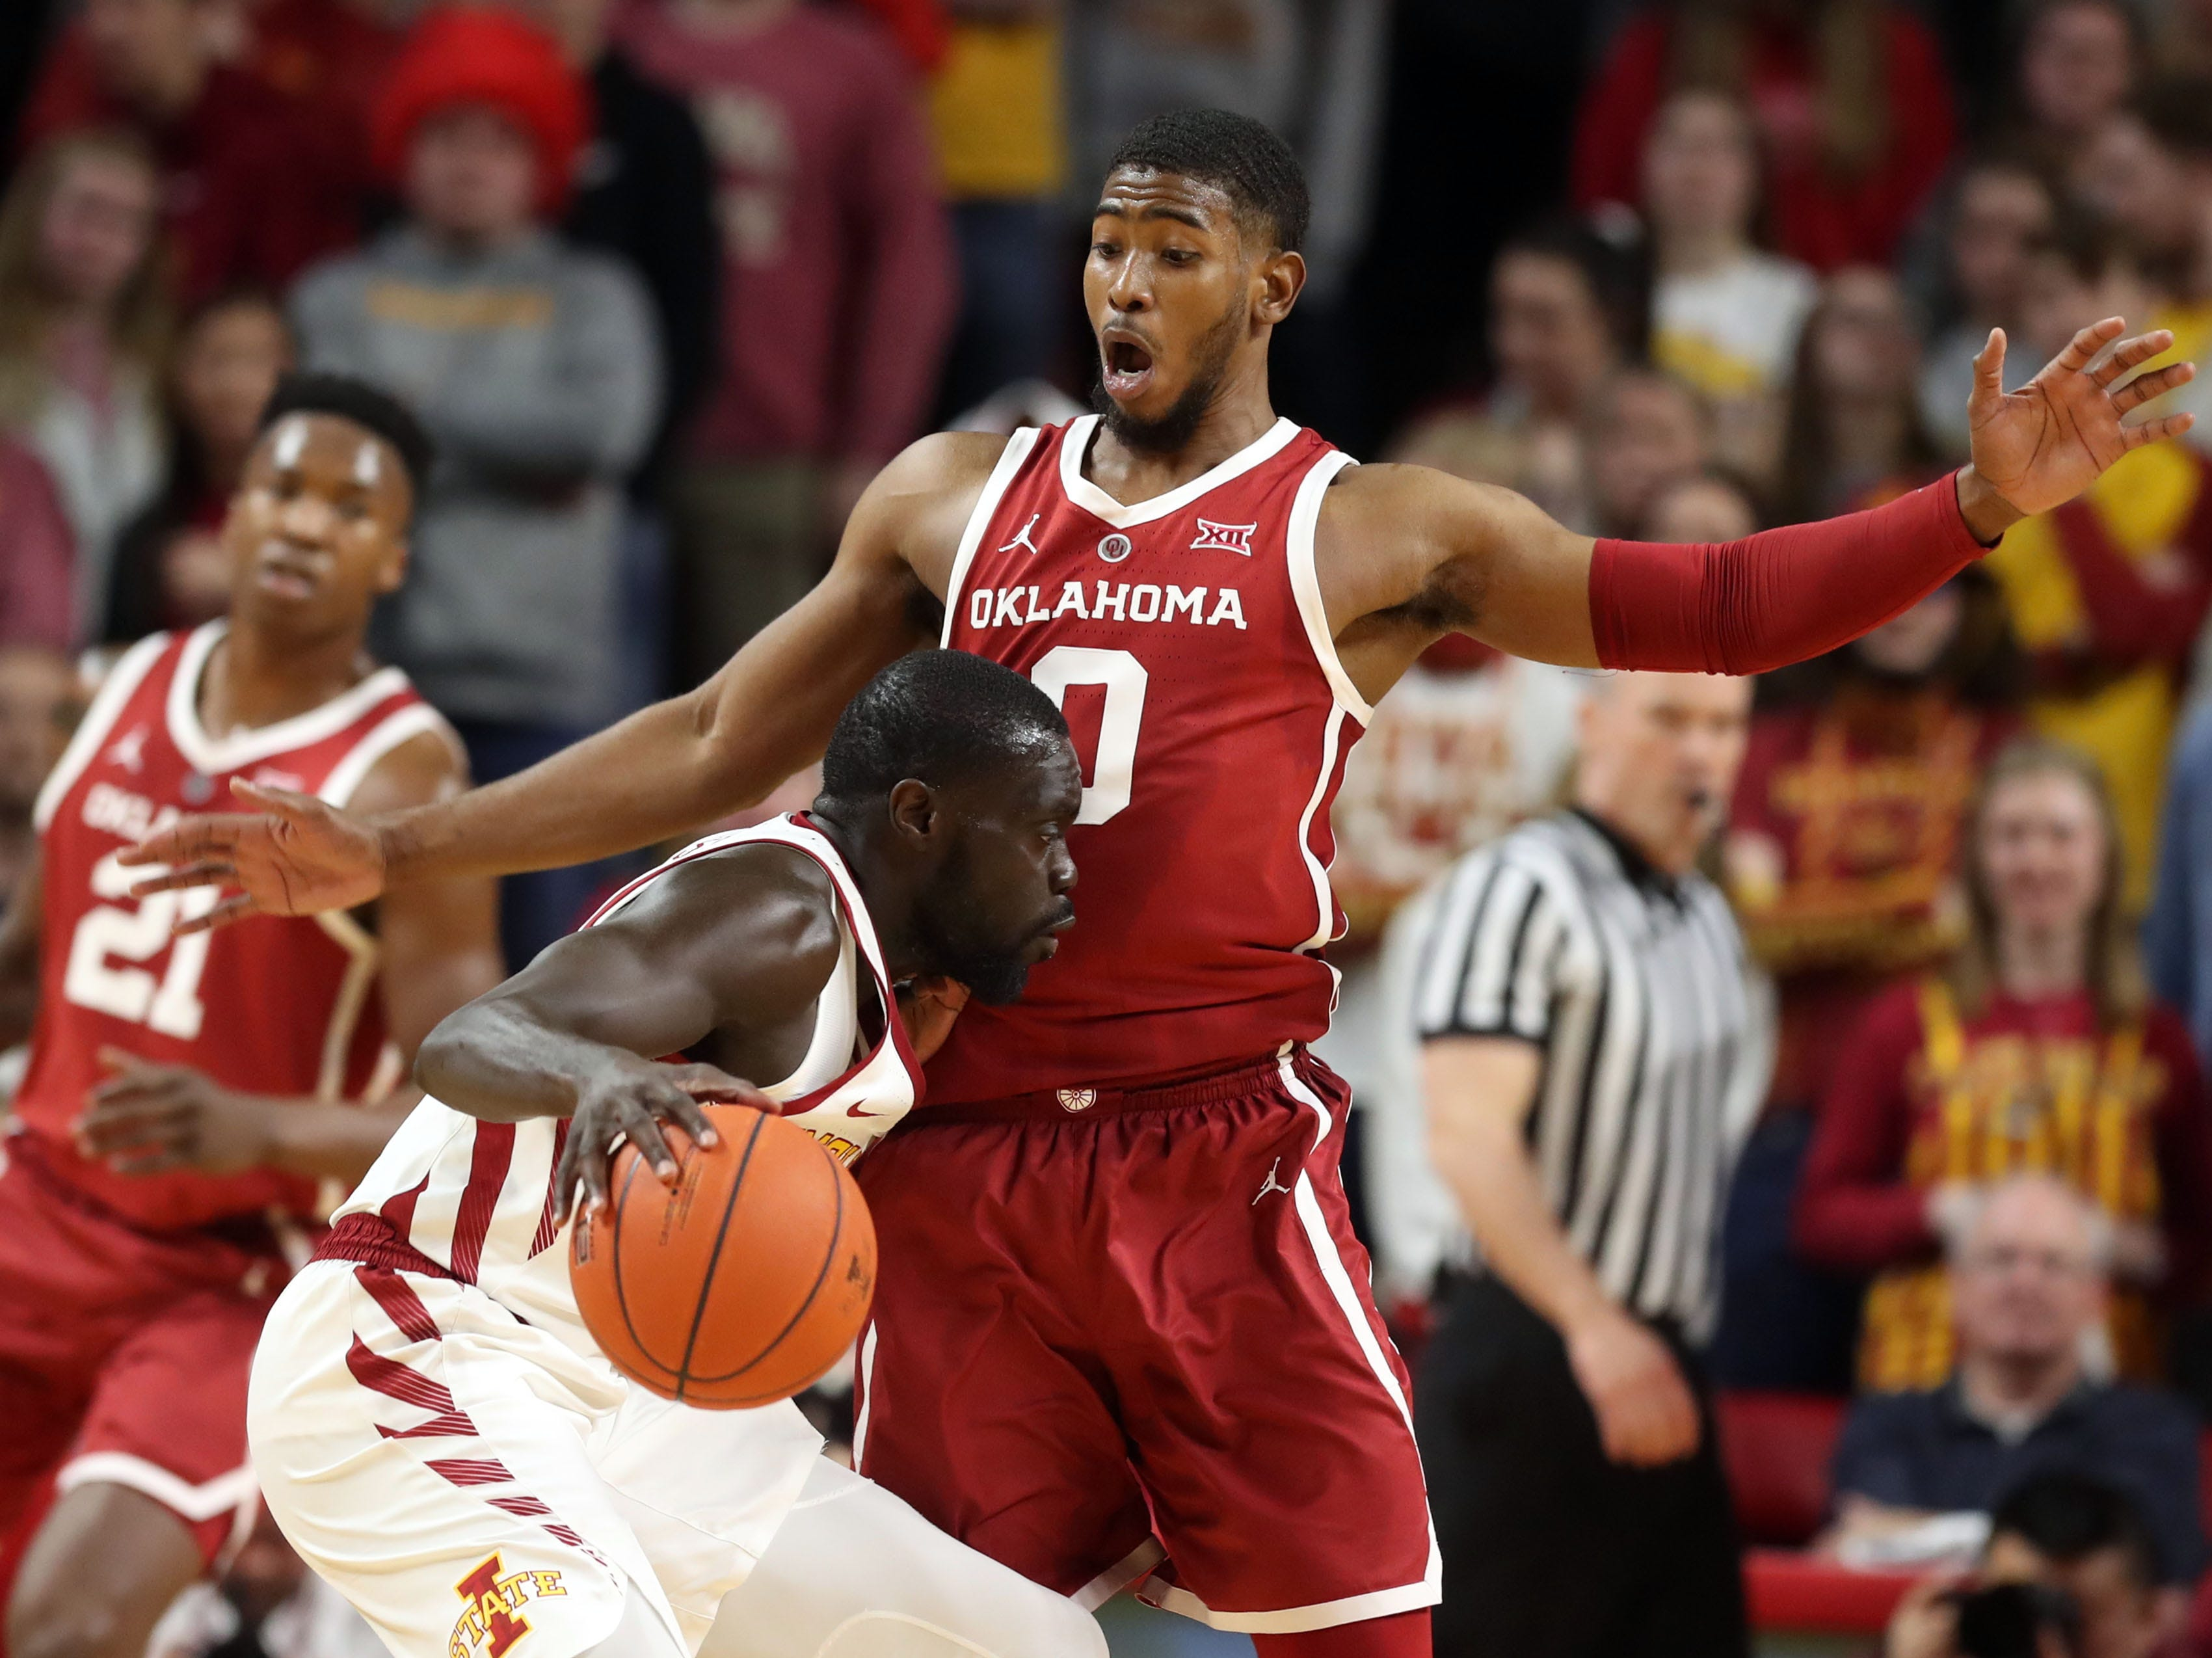 Oklahoma Sooners guard Christian James (0) defends Iowa State Cyclones guard Marial Shayok (3) at Hilton Coliseum. The Cyclones beat the sooners 78 to 61.